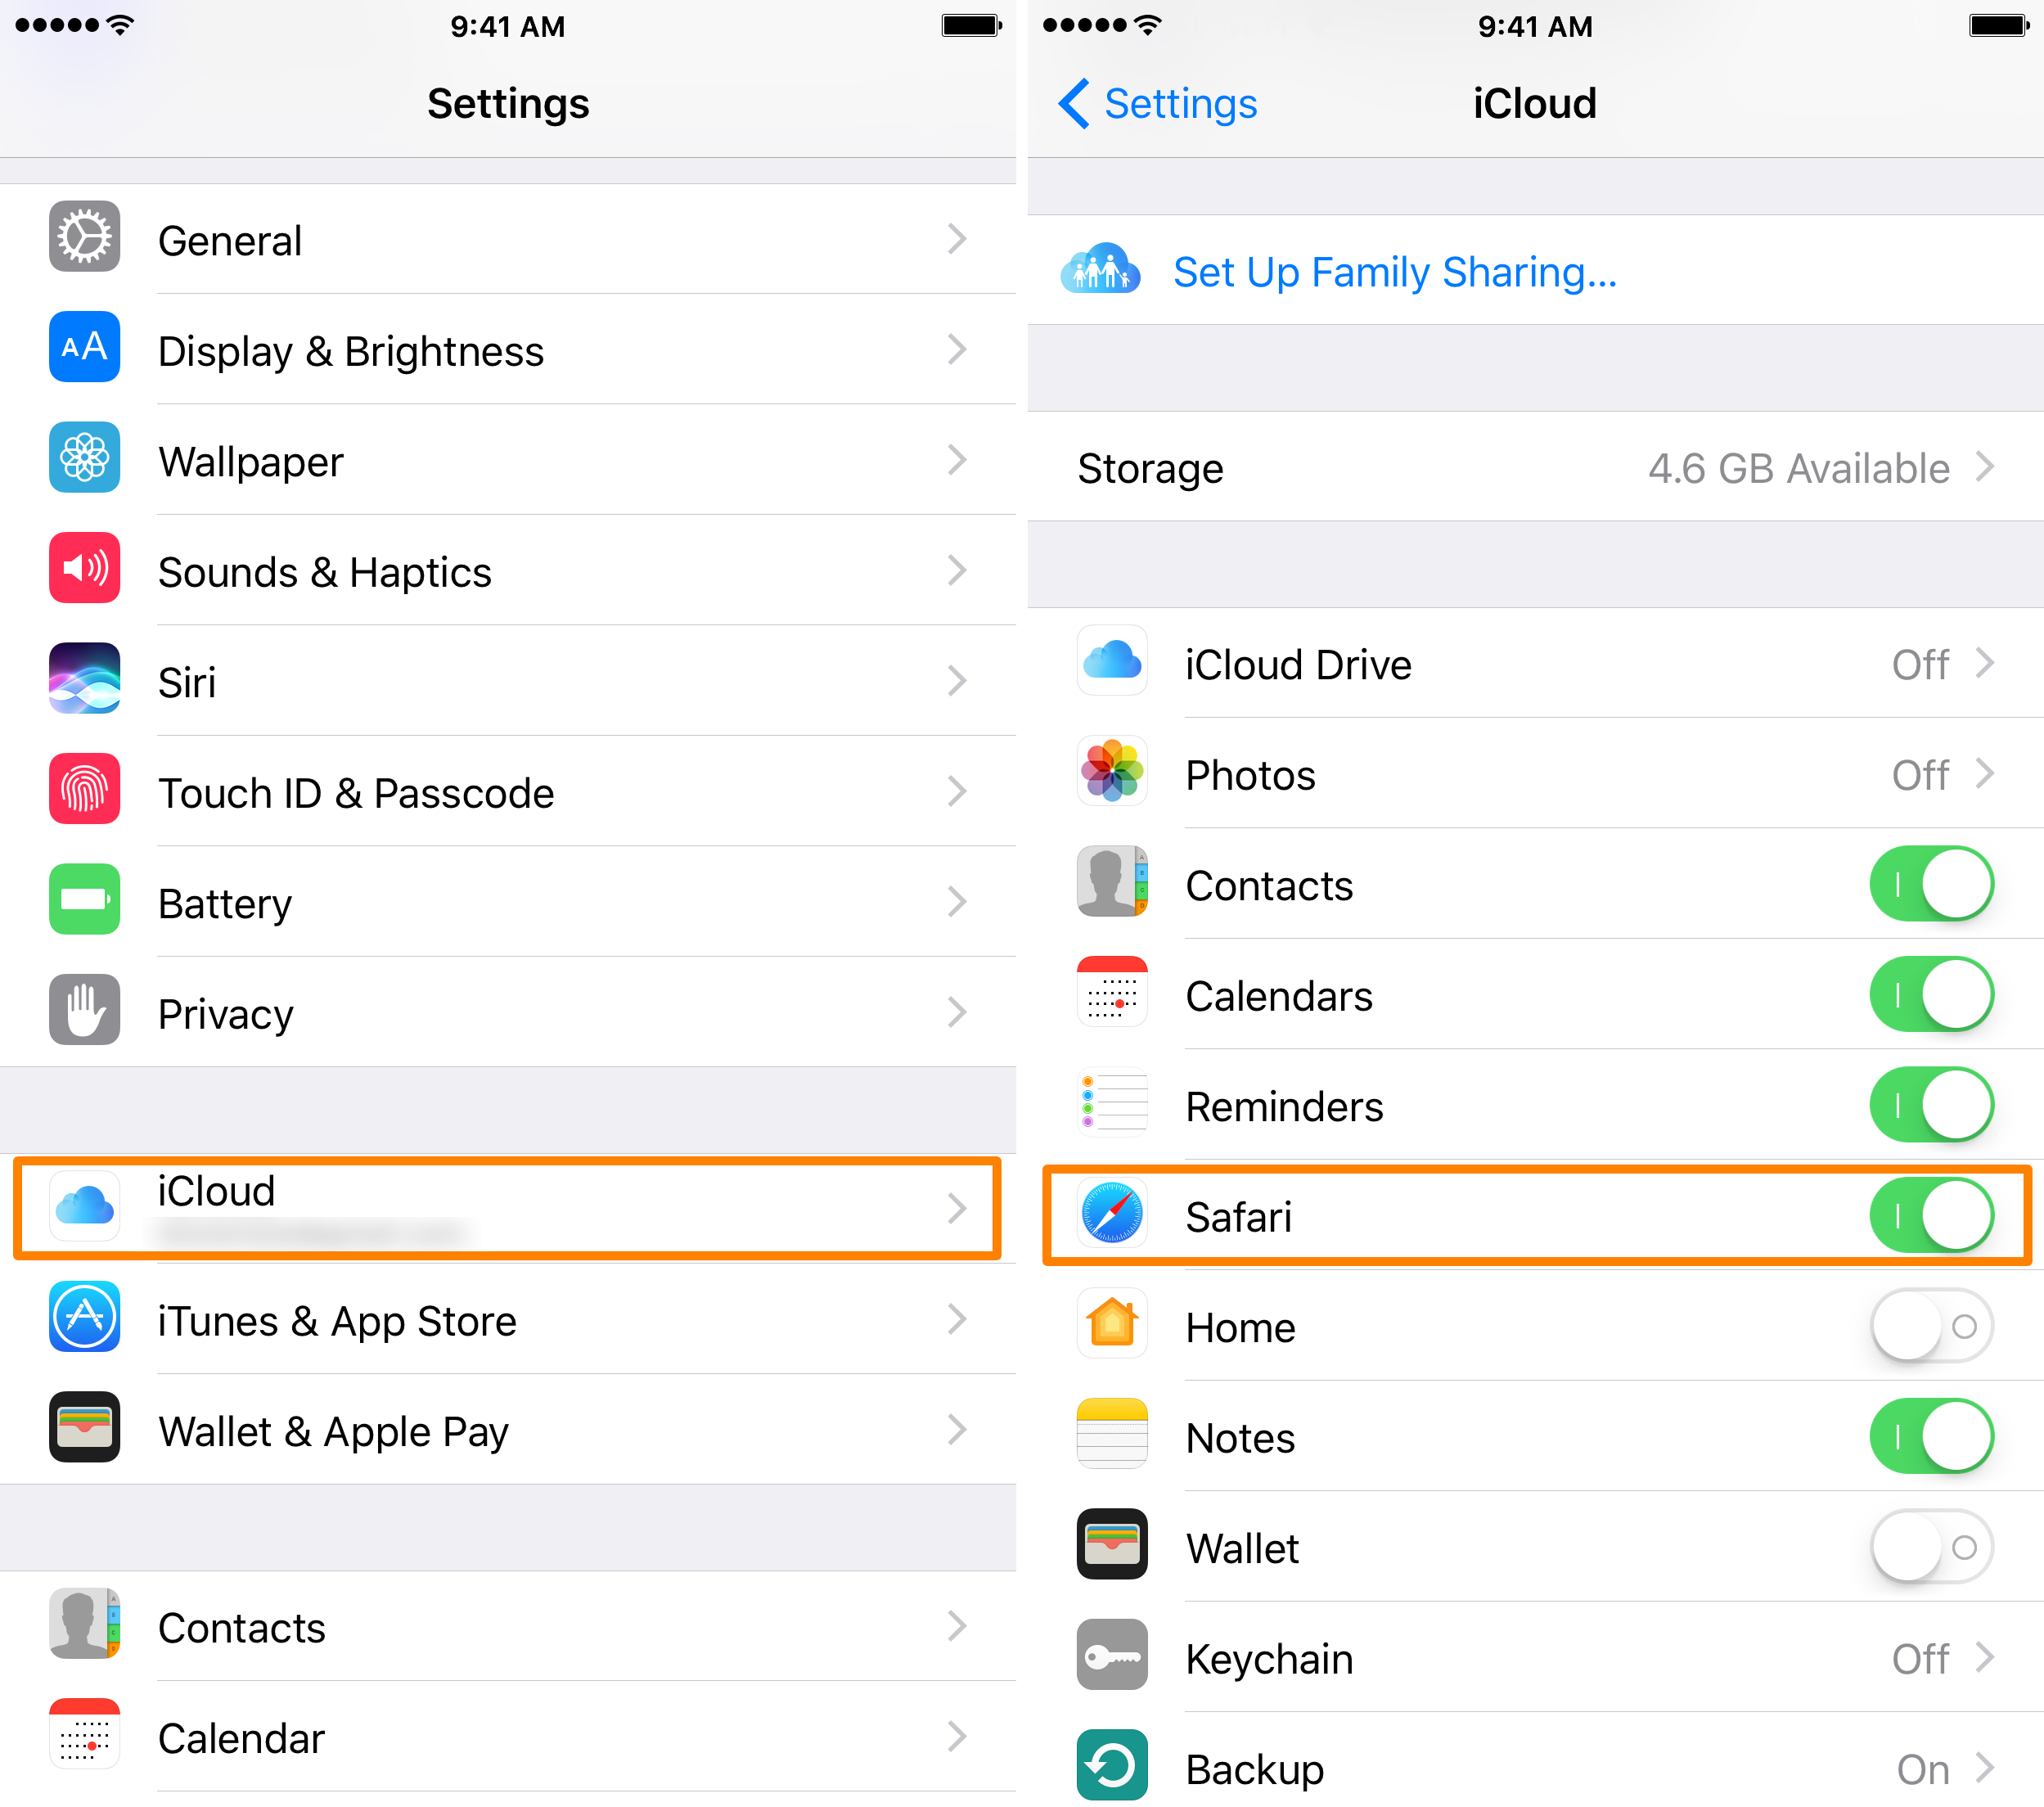 iPhone iCloud Safari Setting Enabled